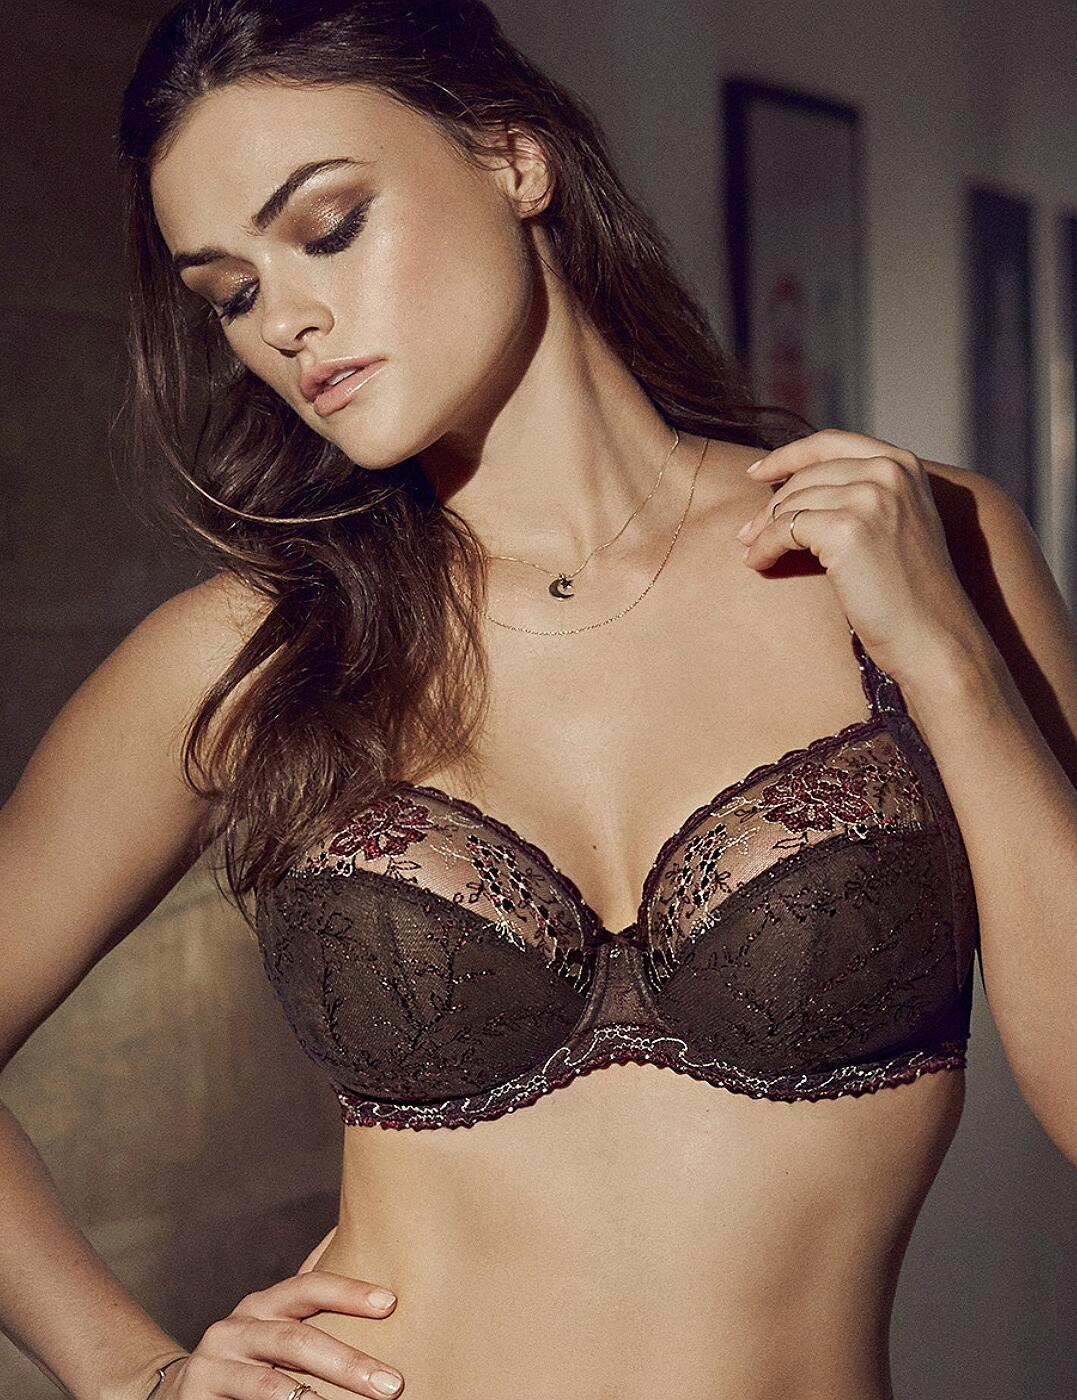 0162880/0162881 Prima Donna Golden Dreams Underwired Full Cup Bra - 0162880/0162881 Wengé